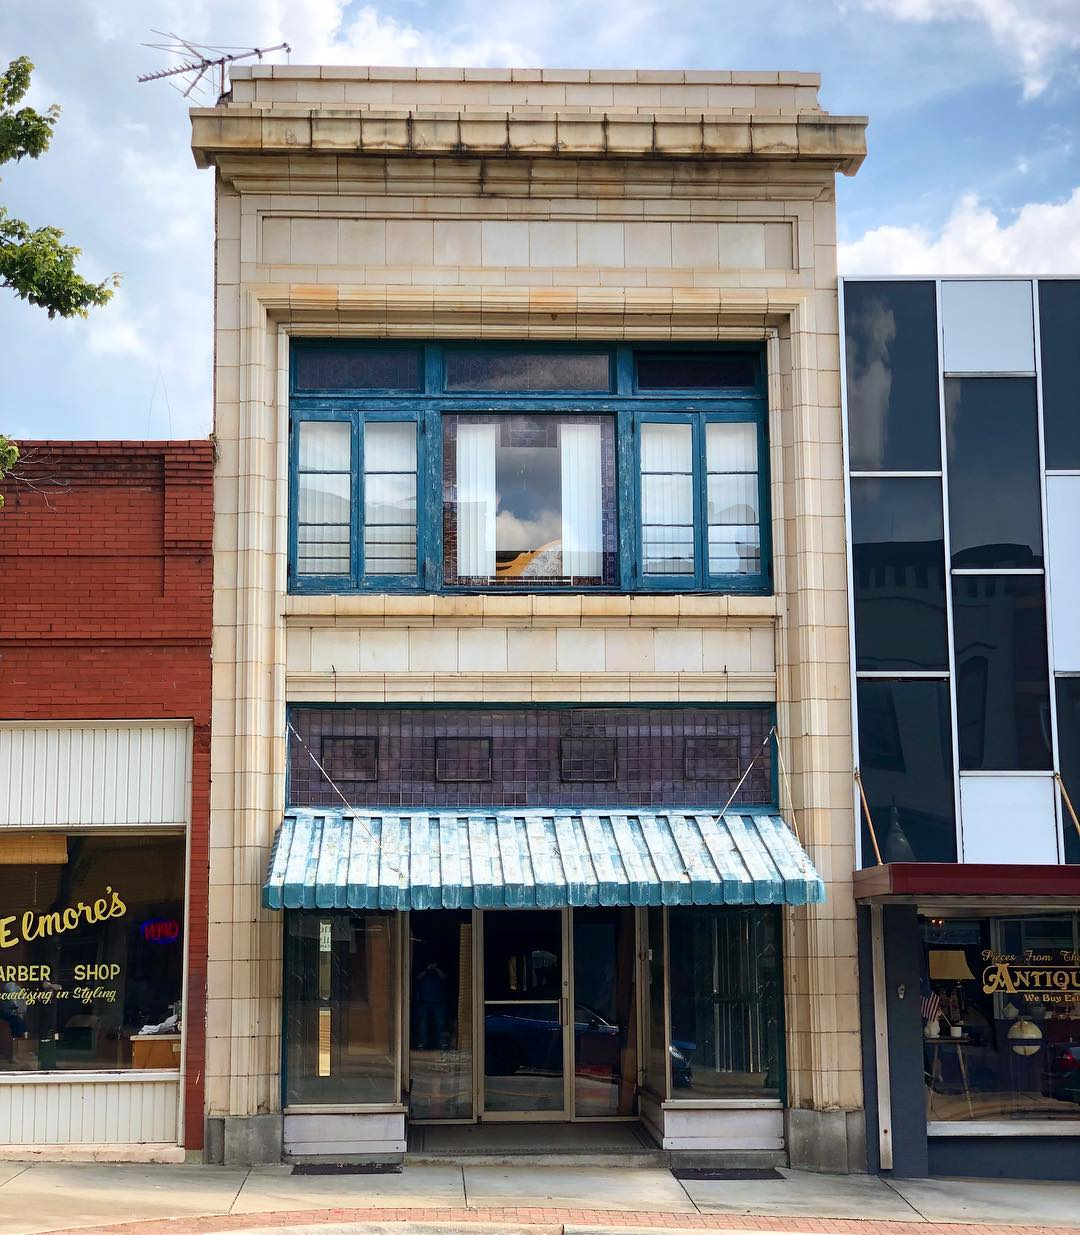 This brick commercial building was built in 1908. It is located on Limestone Street and is part of the Gaffney Commercial Historic District